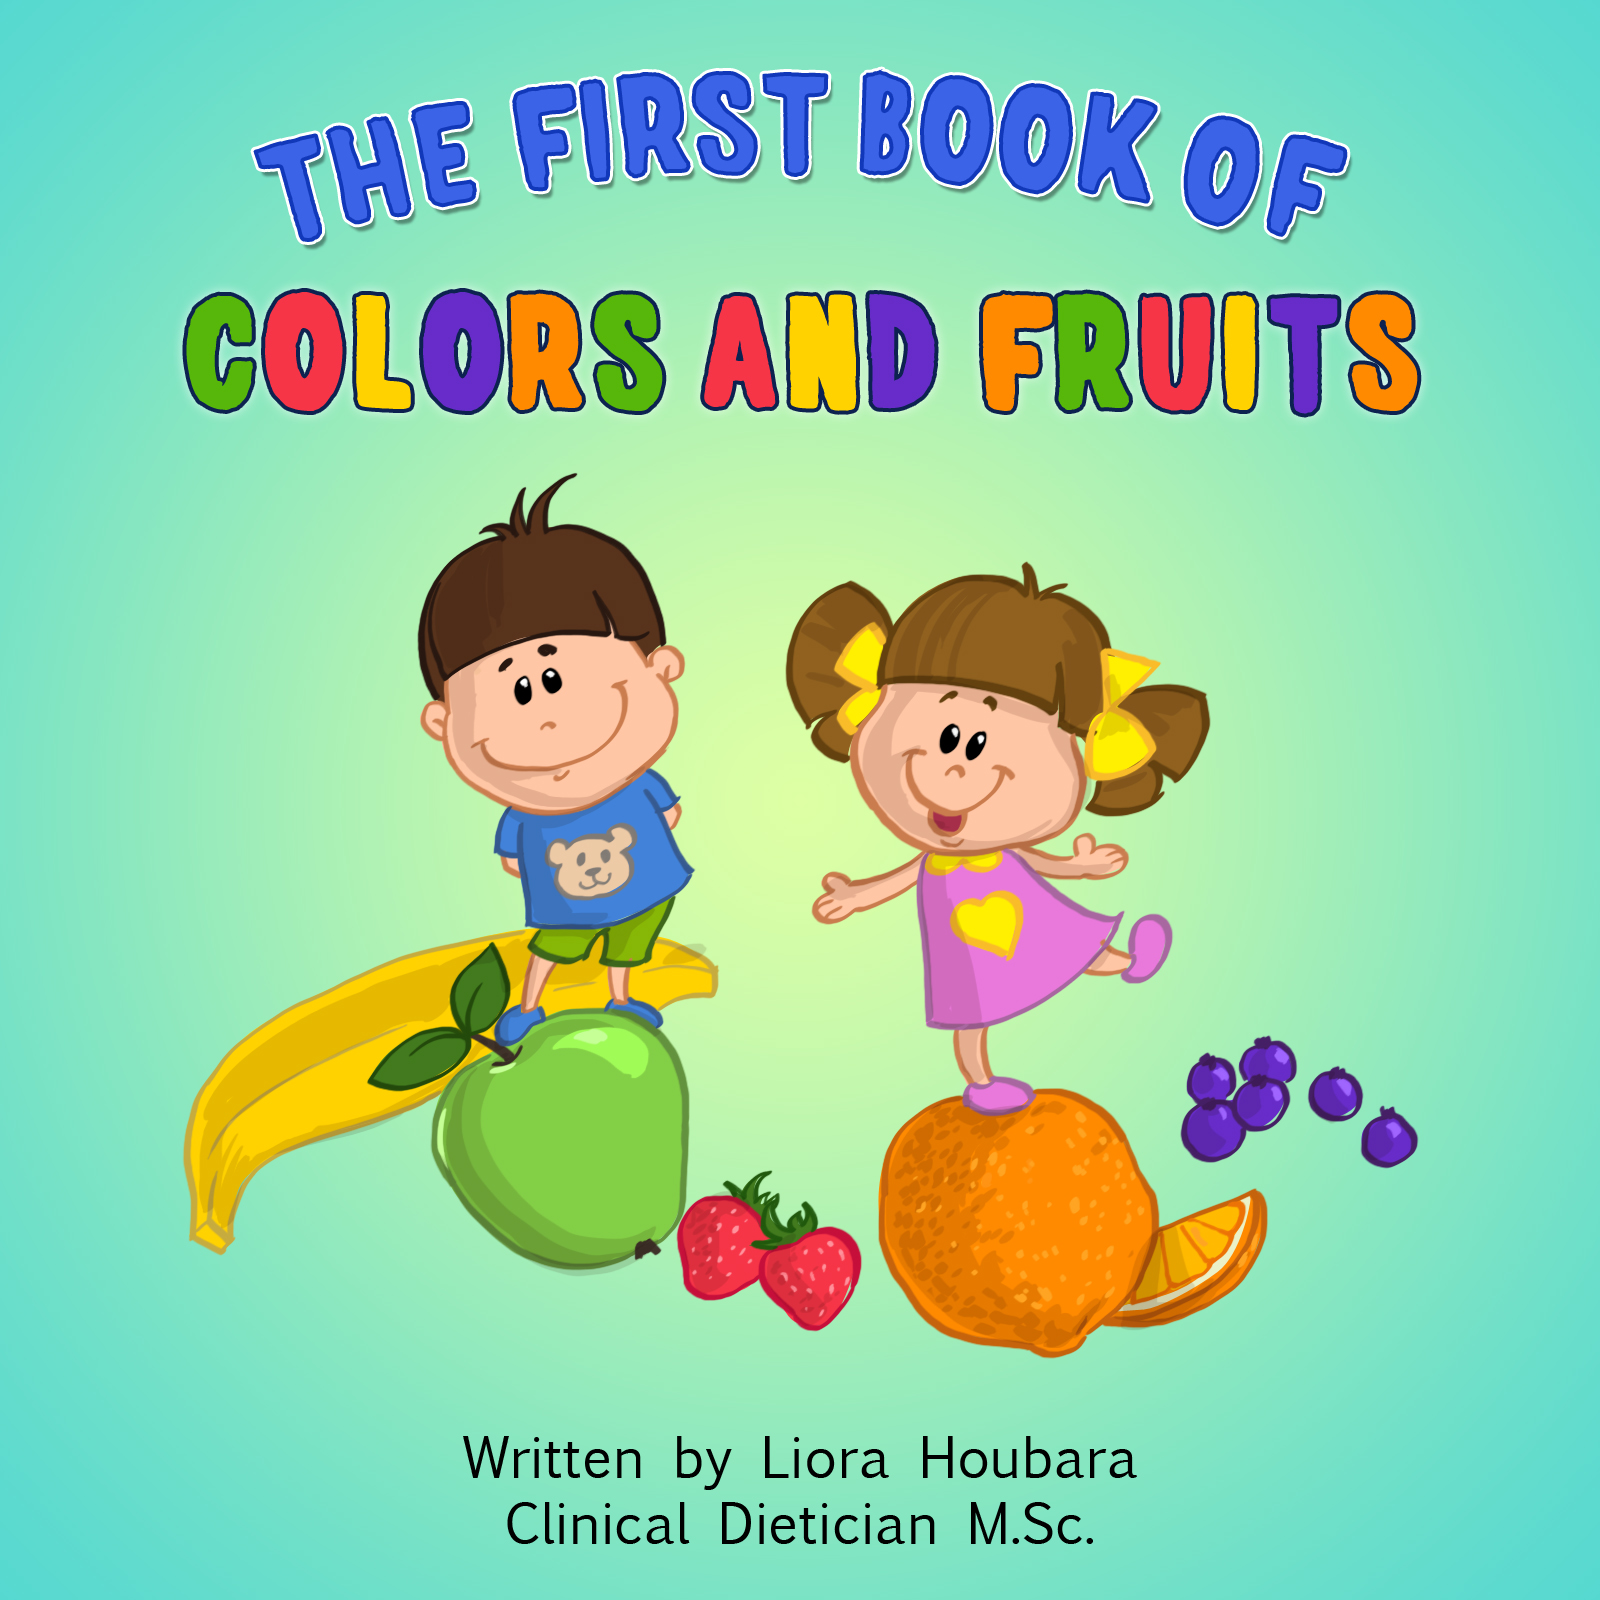 The First book of Colors and Fruits